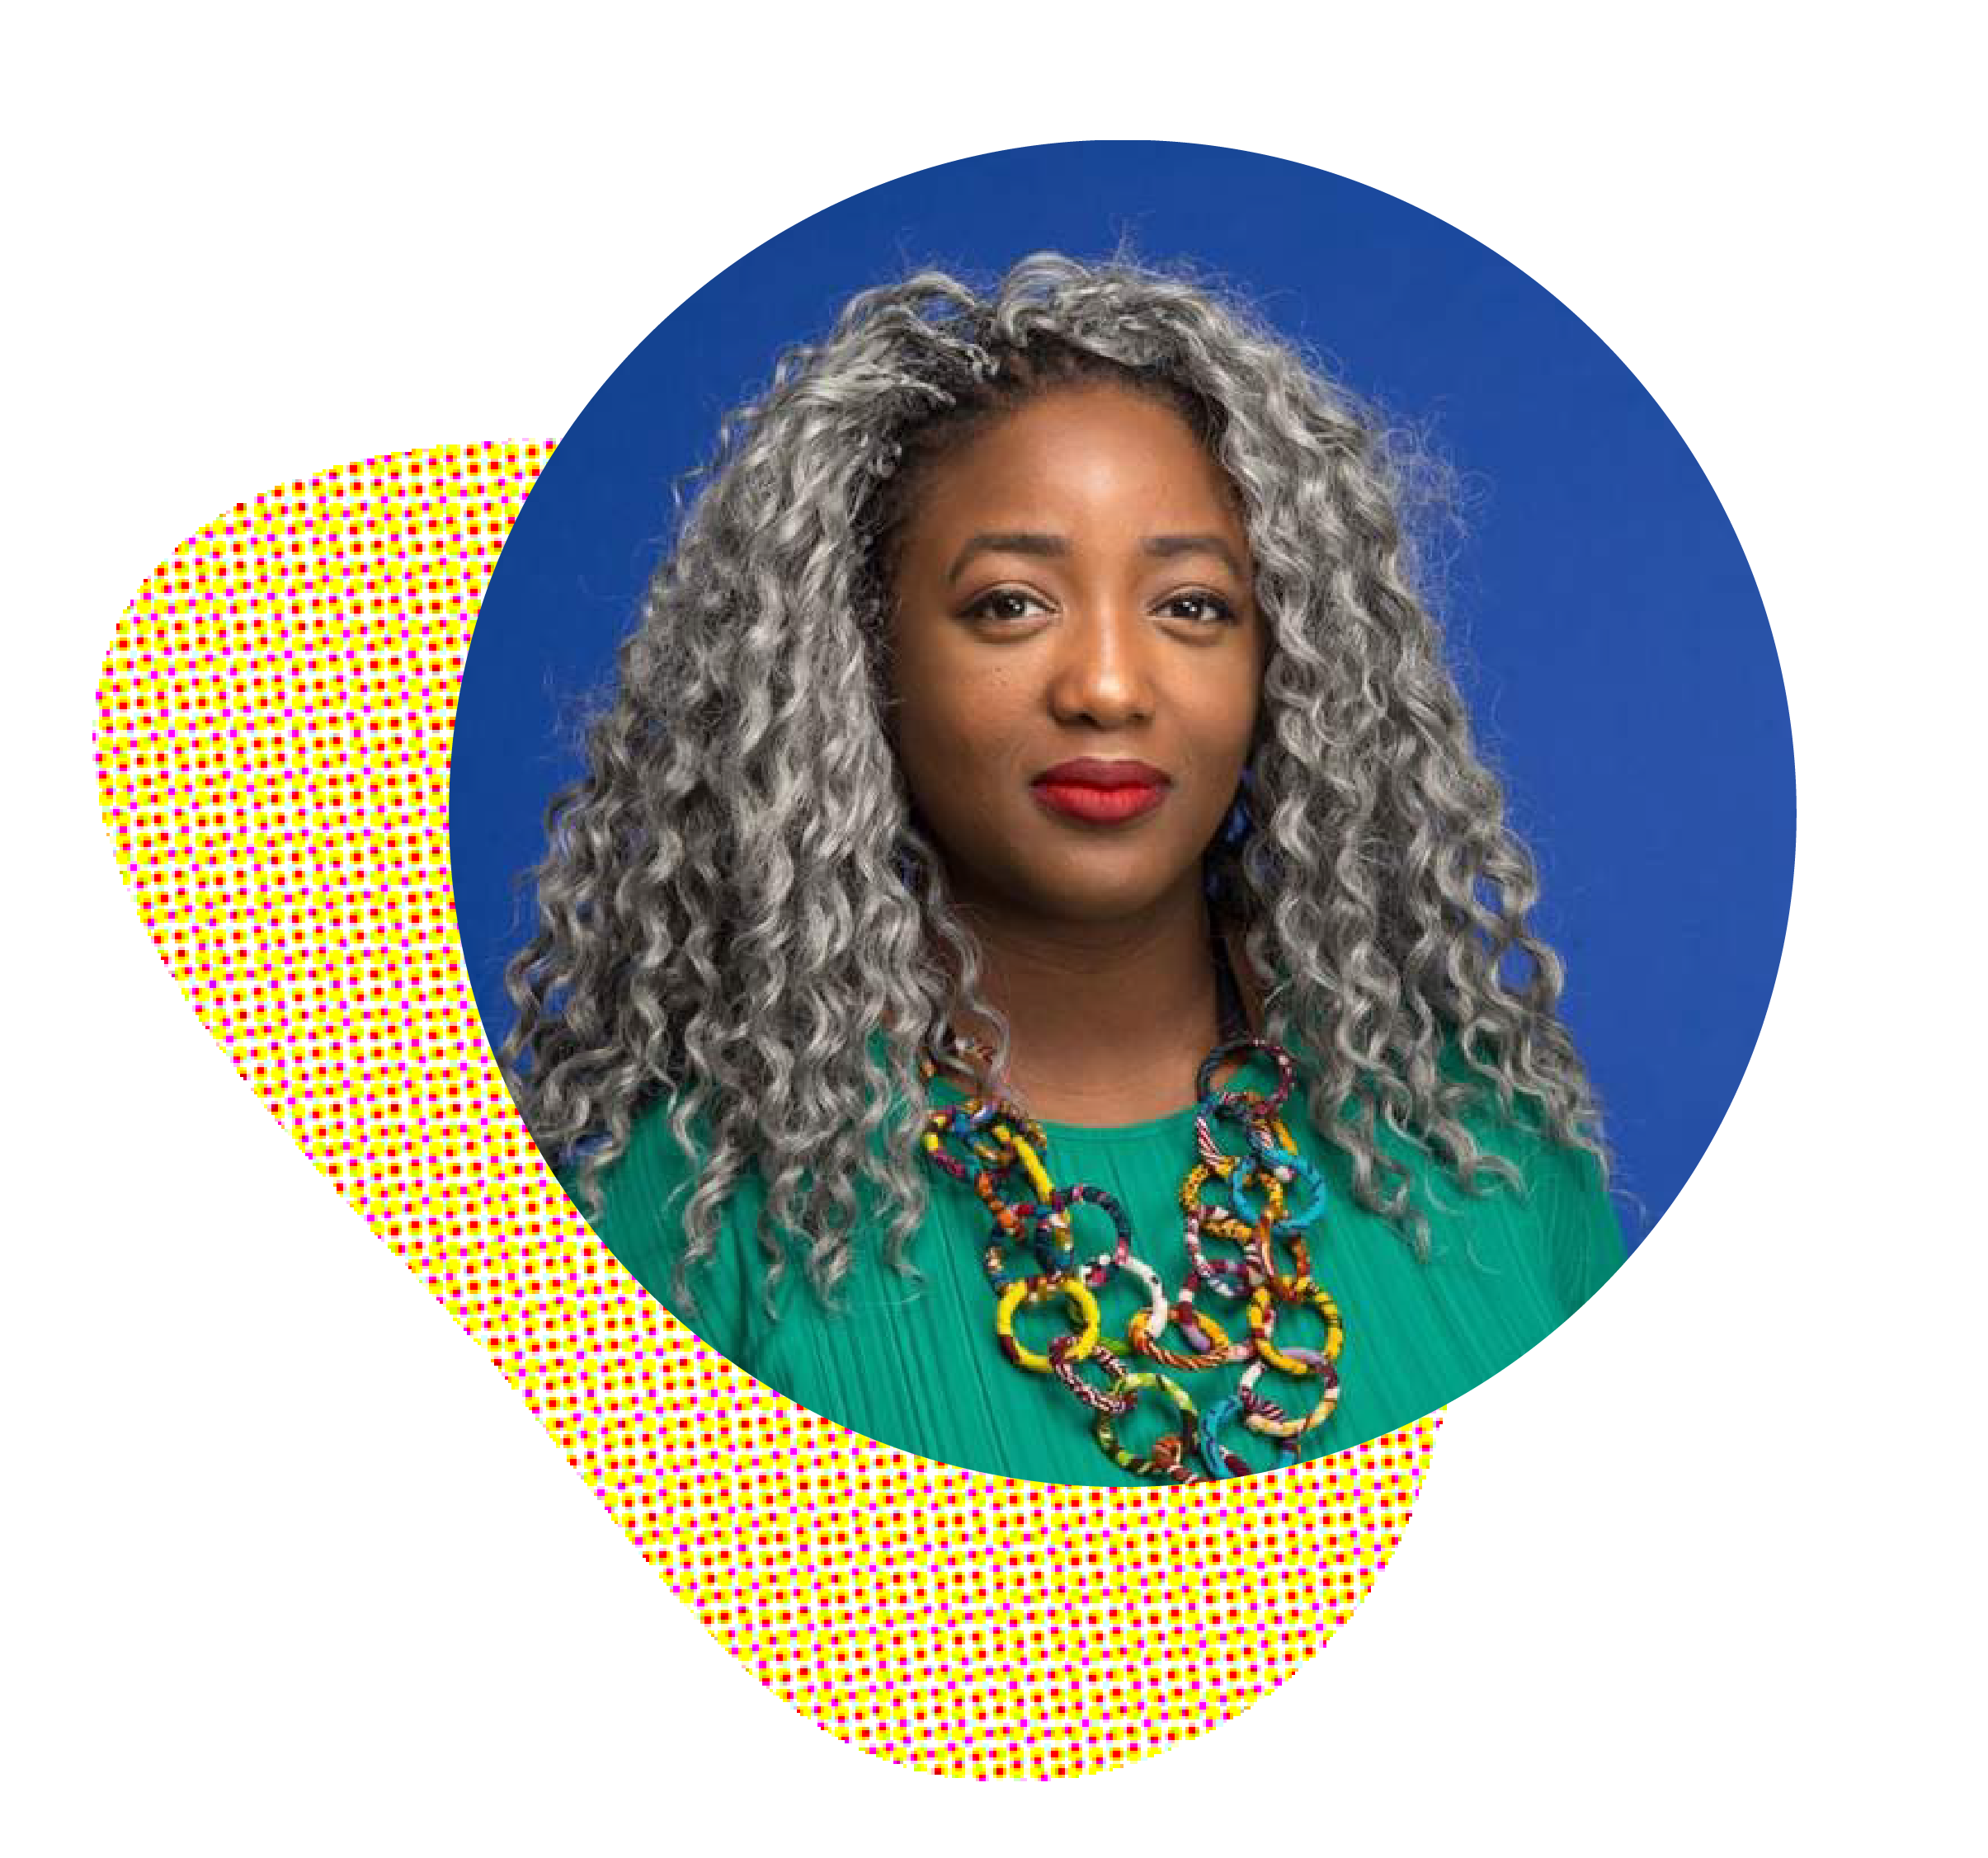 "Anne Marie Imafidon MBE, Stemettes - ""We joined Collective back in 2015, when we were based at 37 Camden High Street, and later on we moved into Temperance. I started Stemettes because of a problem I noticed in the industry; a drastically sinking number of women in these technical professions. We started in 2013, and our aim has been to inspire the next generation of females into Science, Technology, Engineering and Mathematics roles via a series of events and opportunities, as well as showcasing role models in the industry. Since then, we've worked with 40,000 girls across the UK and Ireland and I received an MBE for my commitment to the cause.Collective was really supportive right from the start firstly because of the location. We made lots of exciting partnerships where we were based. It was really handy because we had free rent at a time when we were trying to grow, which can be a huge expense. It allowed us to focus on what we were trying to do at a lower cost. On top of that, you could always ask other people for advice in the hub or go to a lunchtime special to expand your knowledge on topics you're unsure about."""